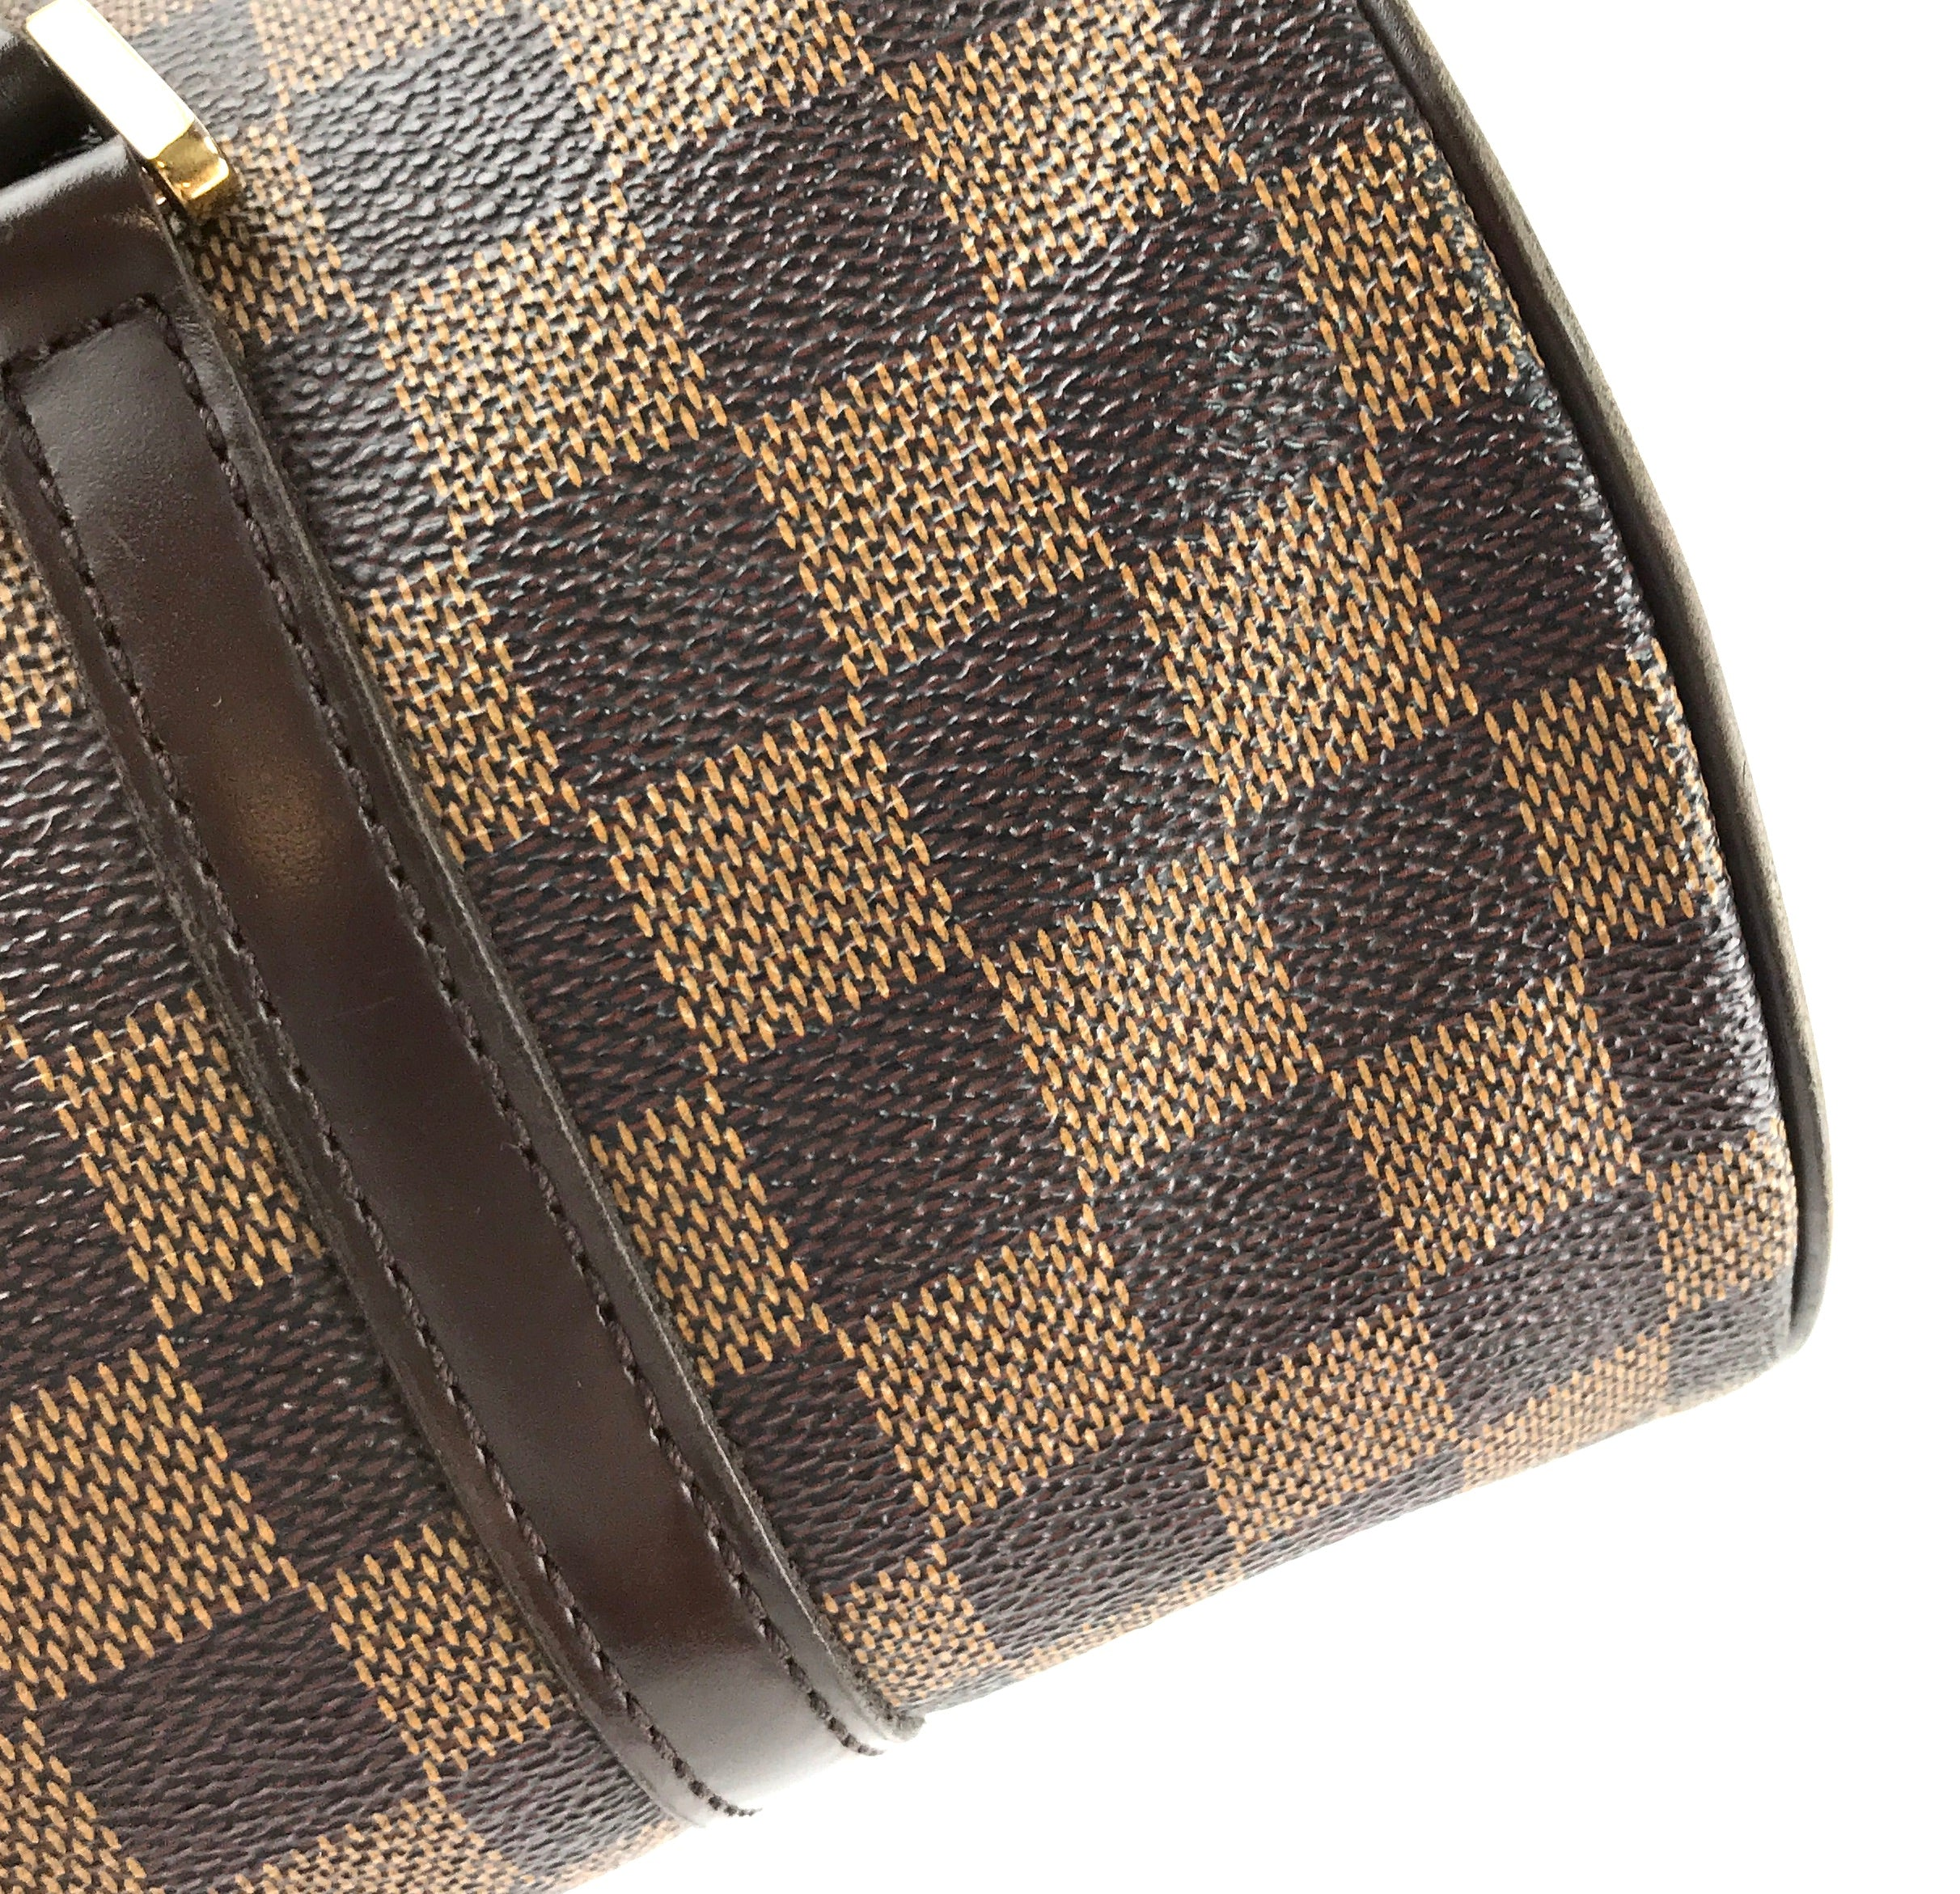 Louis Vuitton Papillon 30 Damier Ébène Canvas